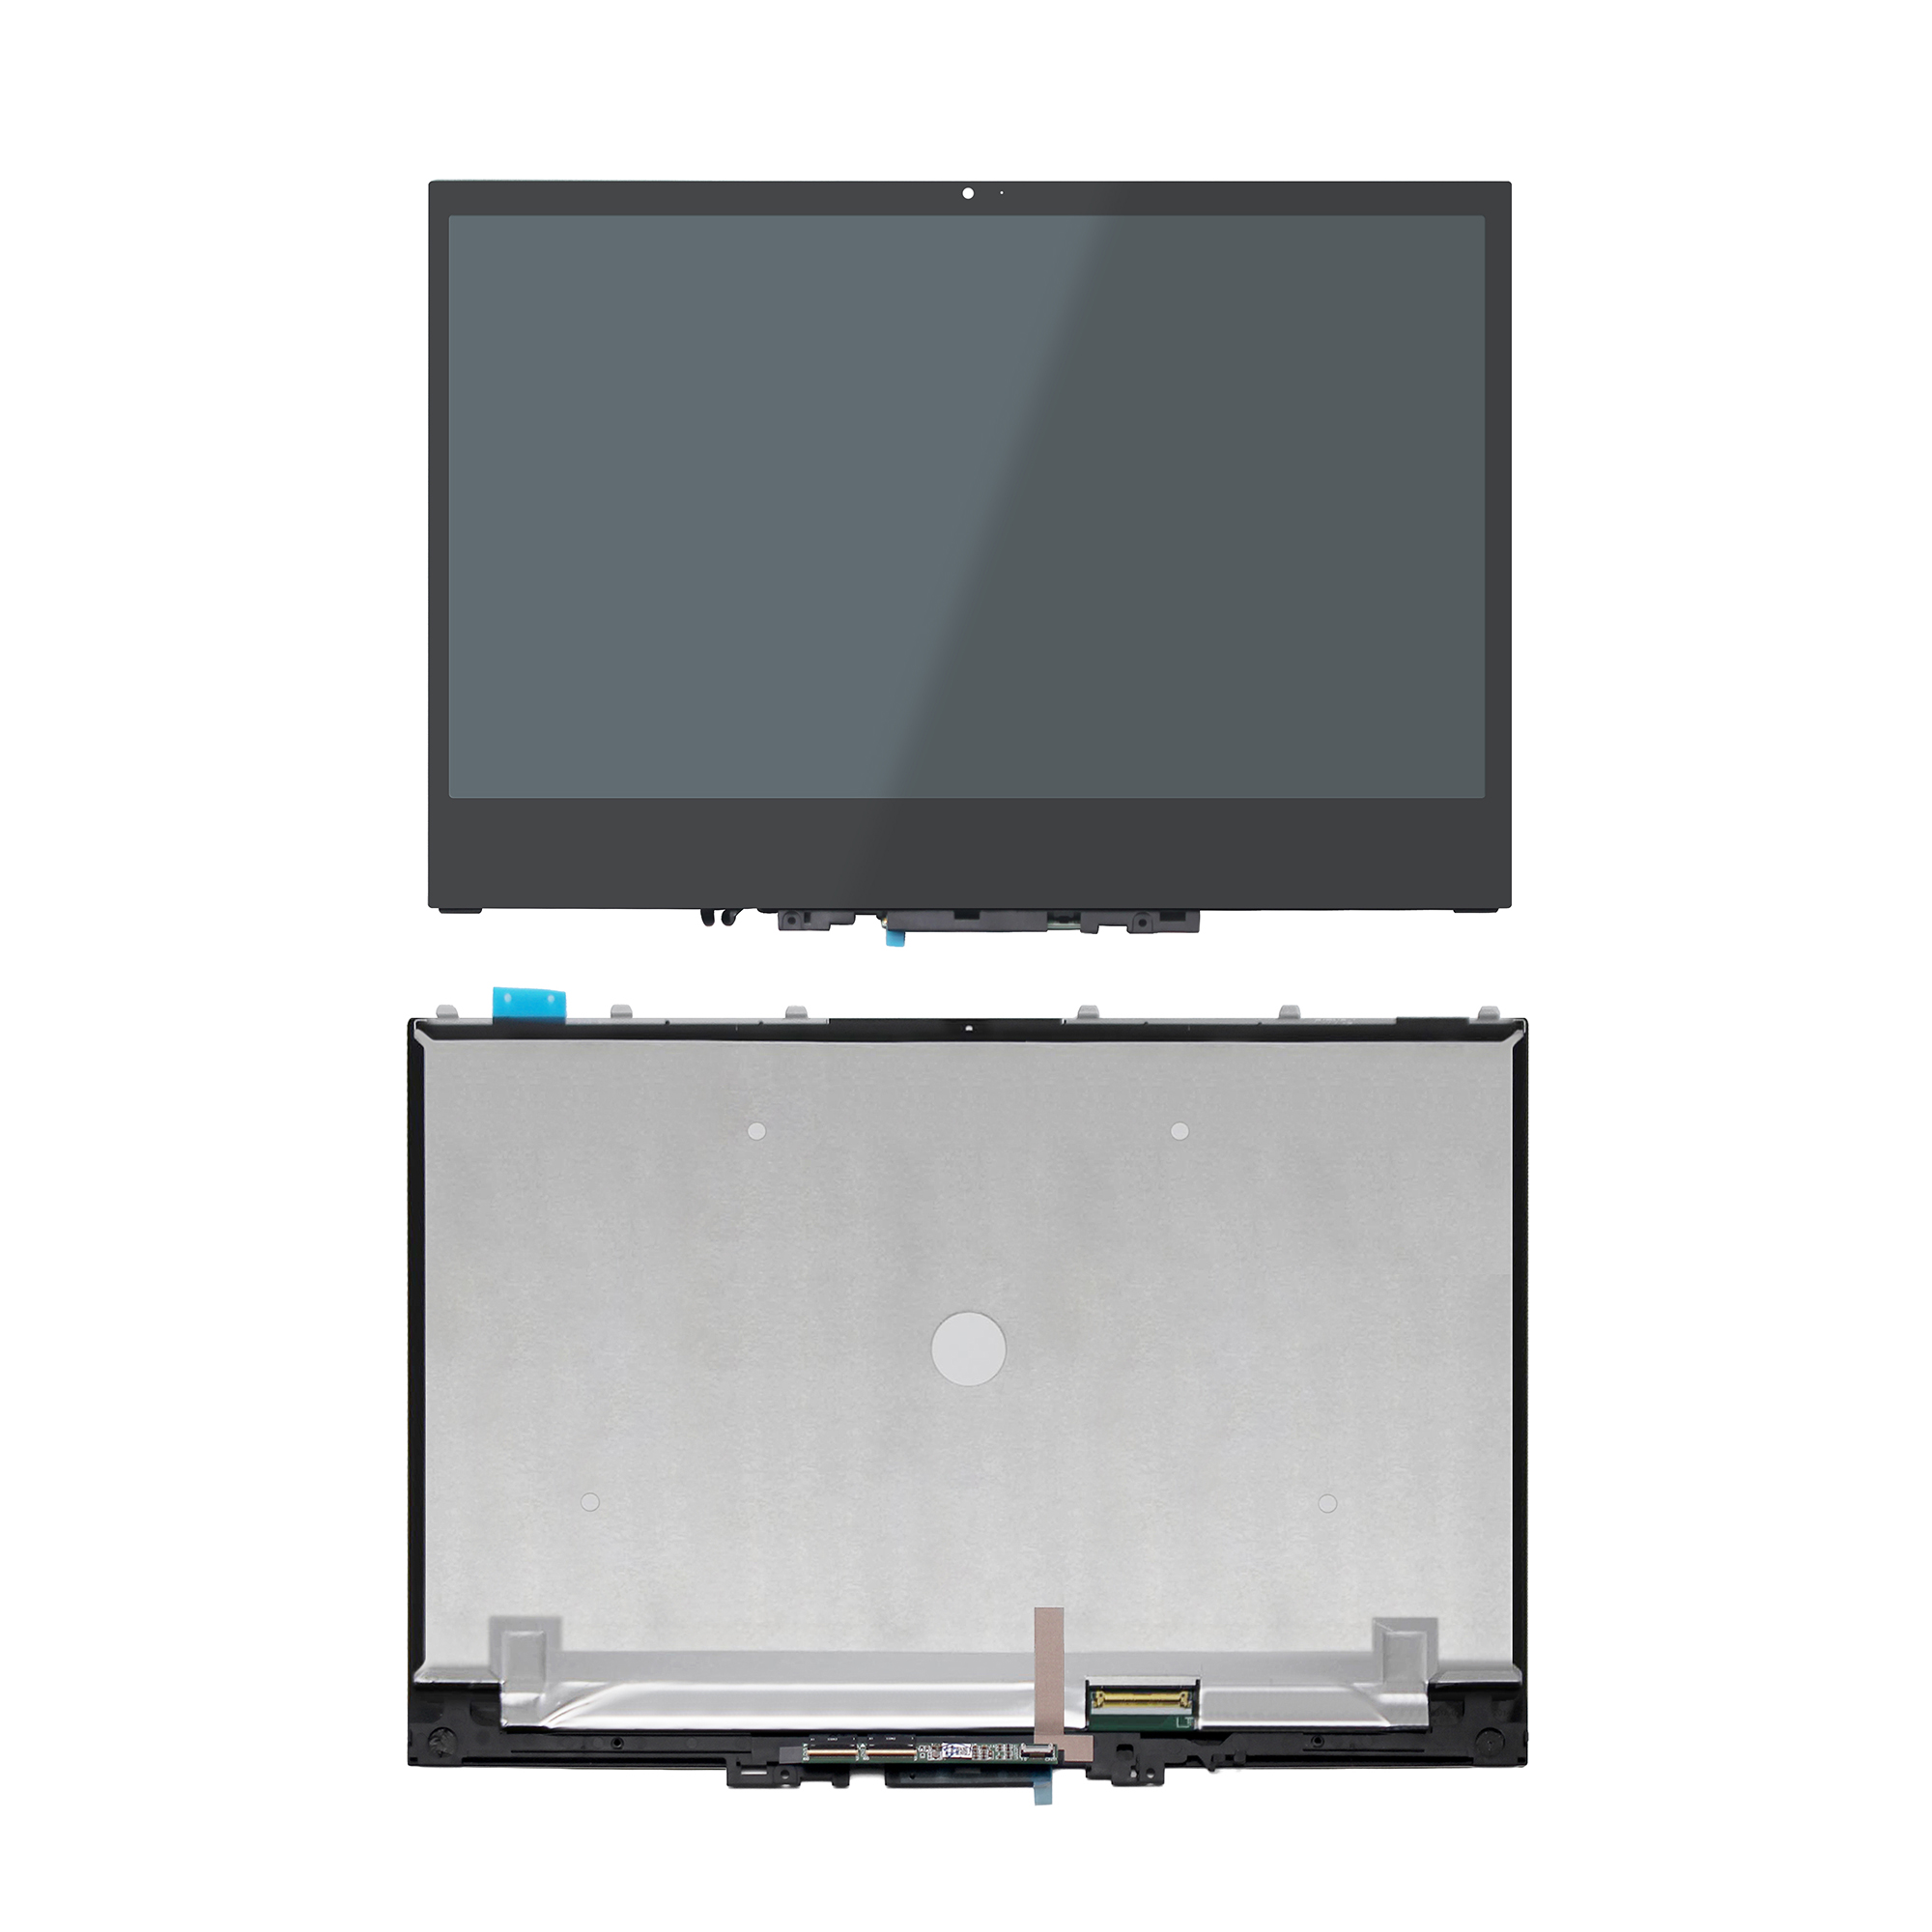 Promote£Touch-Screen-Assembly 5D10N2429 Lenovo Yoga LCD with Bezel for 720-13ikb/5d10n2429/5d10n24290/5d10k81089